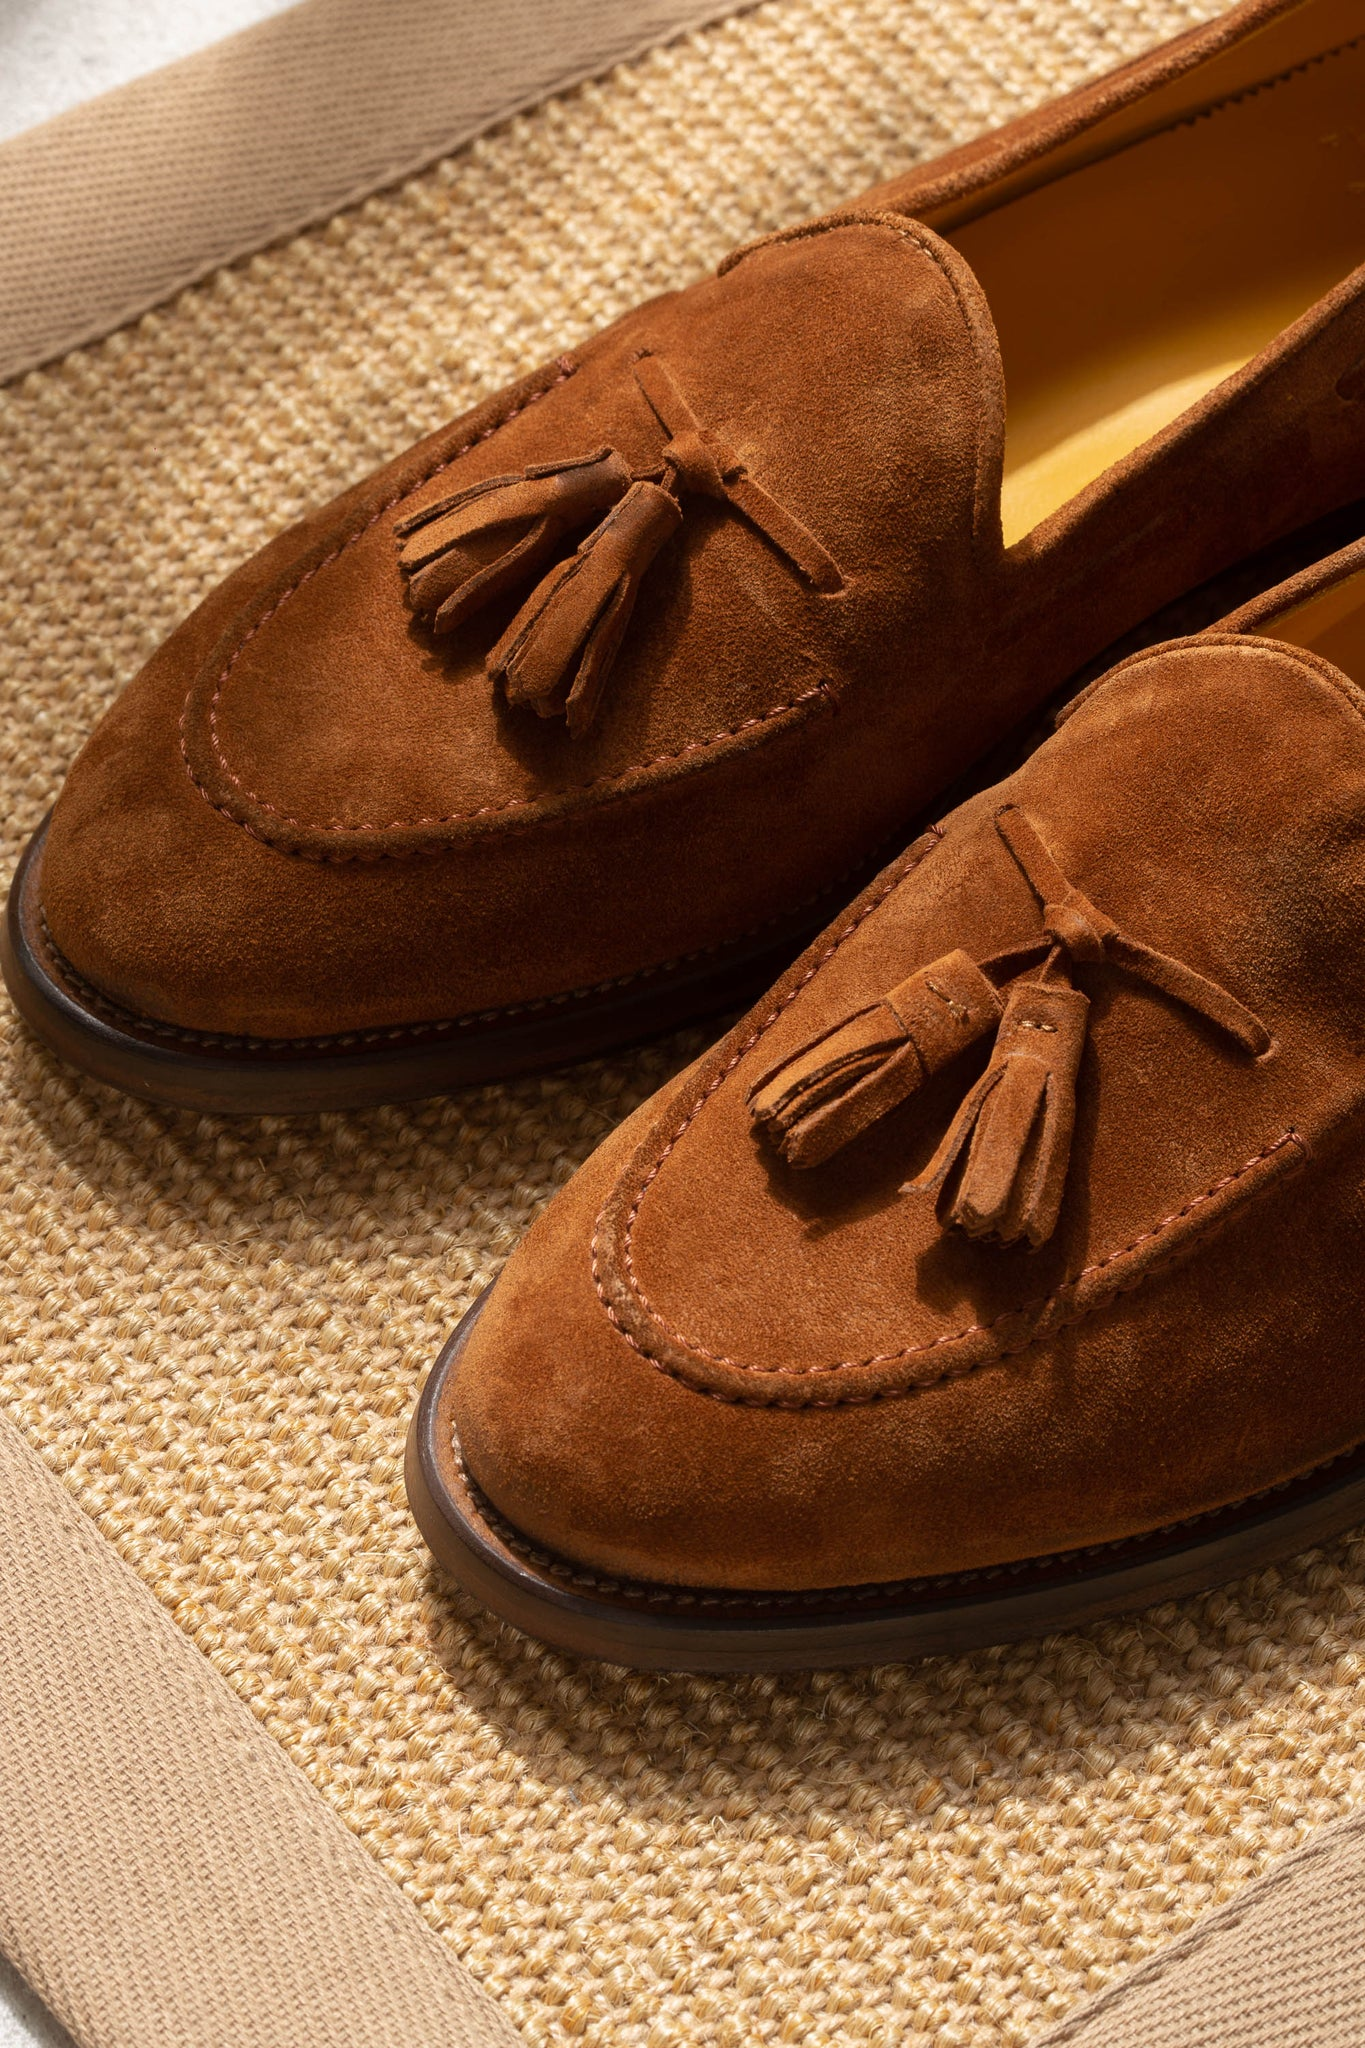 COGNAC SUEDE TASSEL LOAFER - Made In Italy